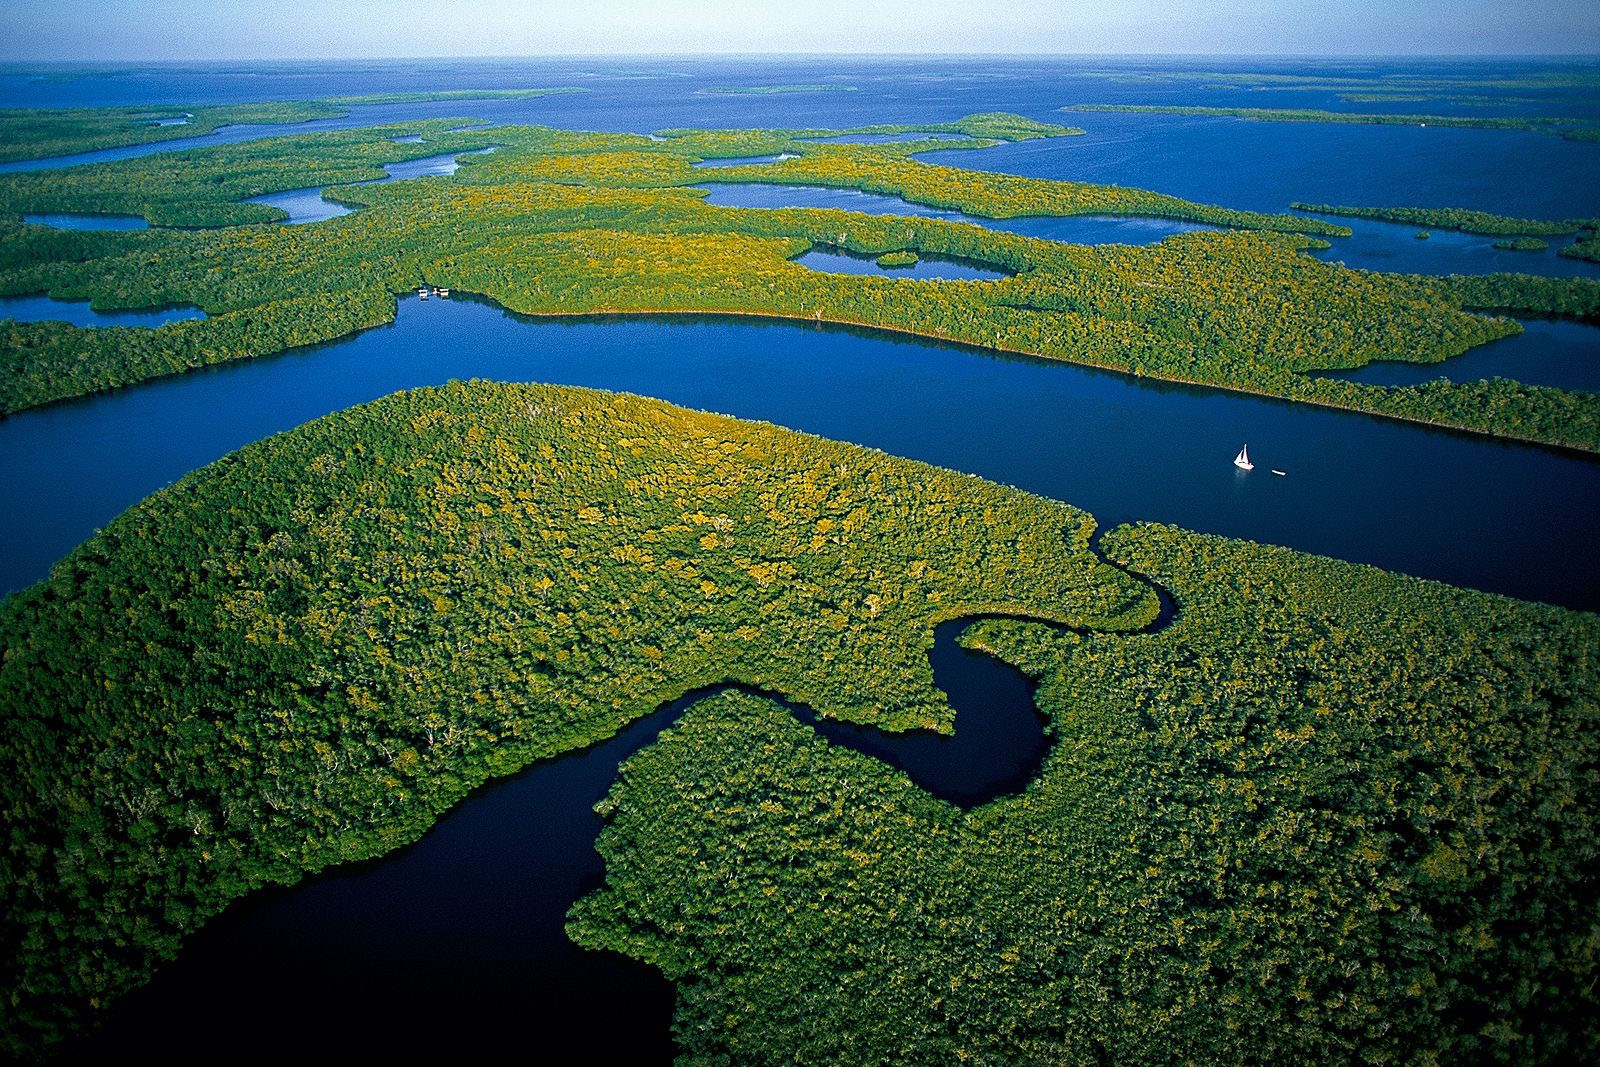 Florida Everglades from the Air